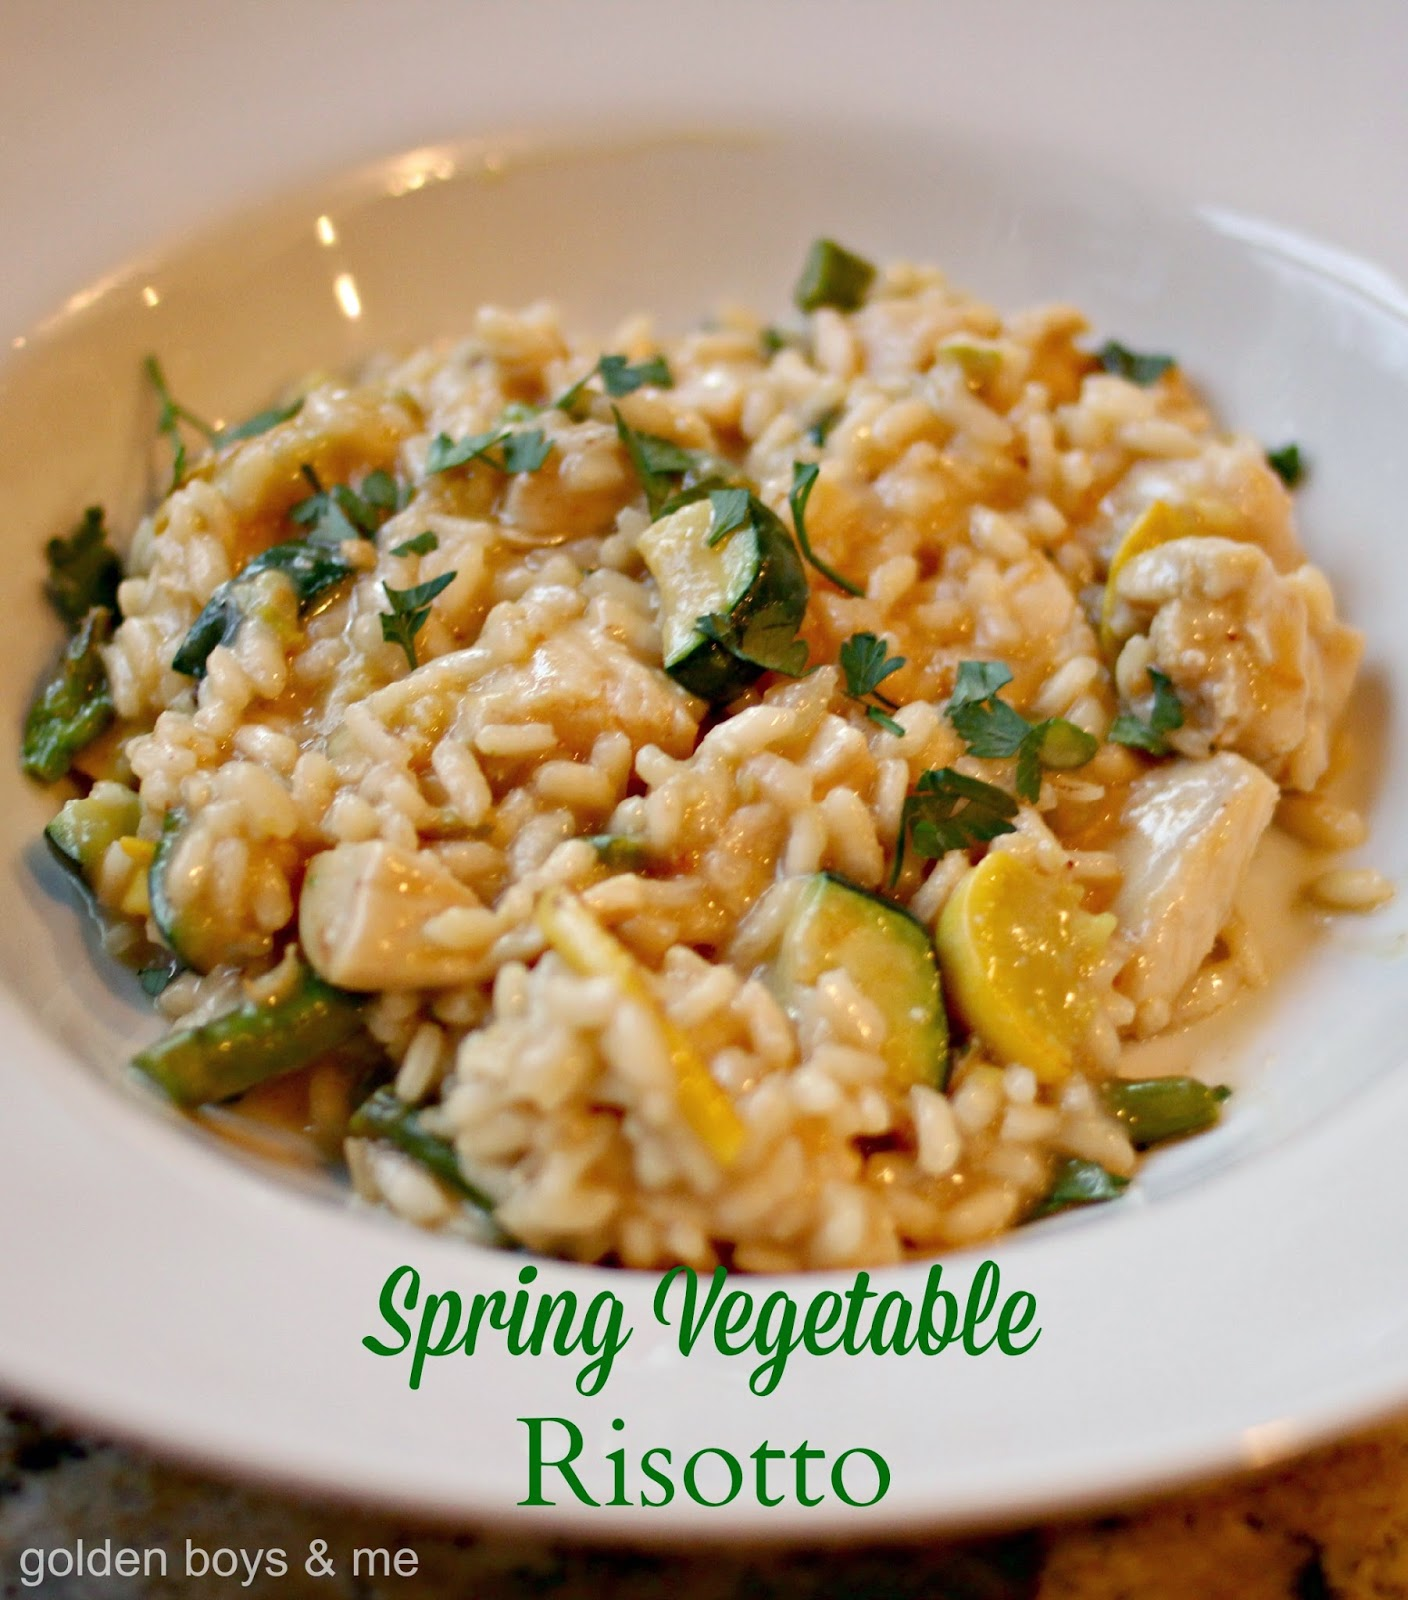 Vegetable risotto with chicken and spring vegetable-www.goldenboysandme.com